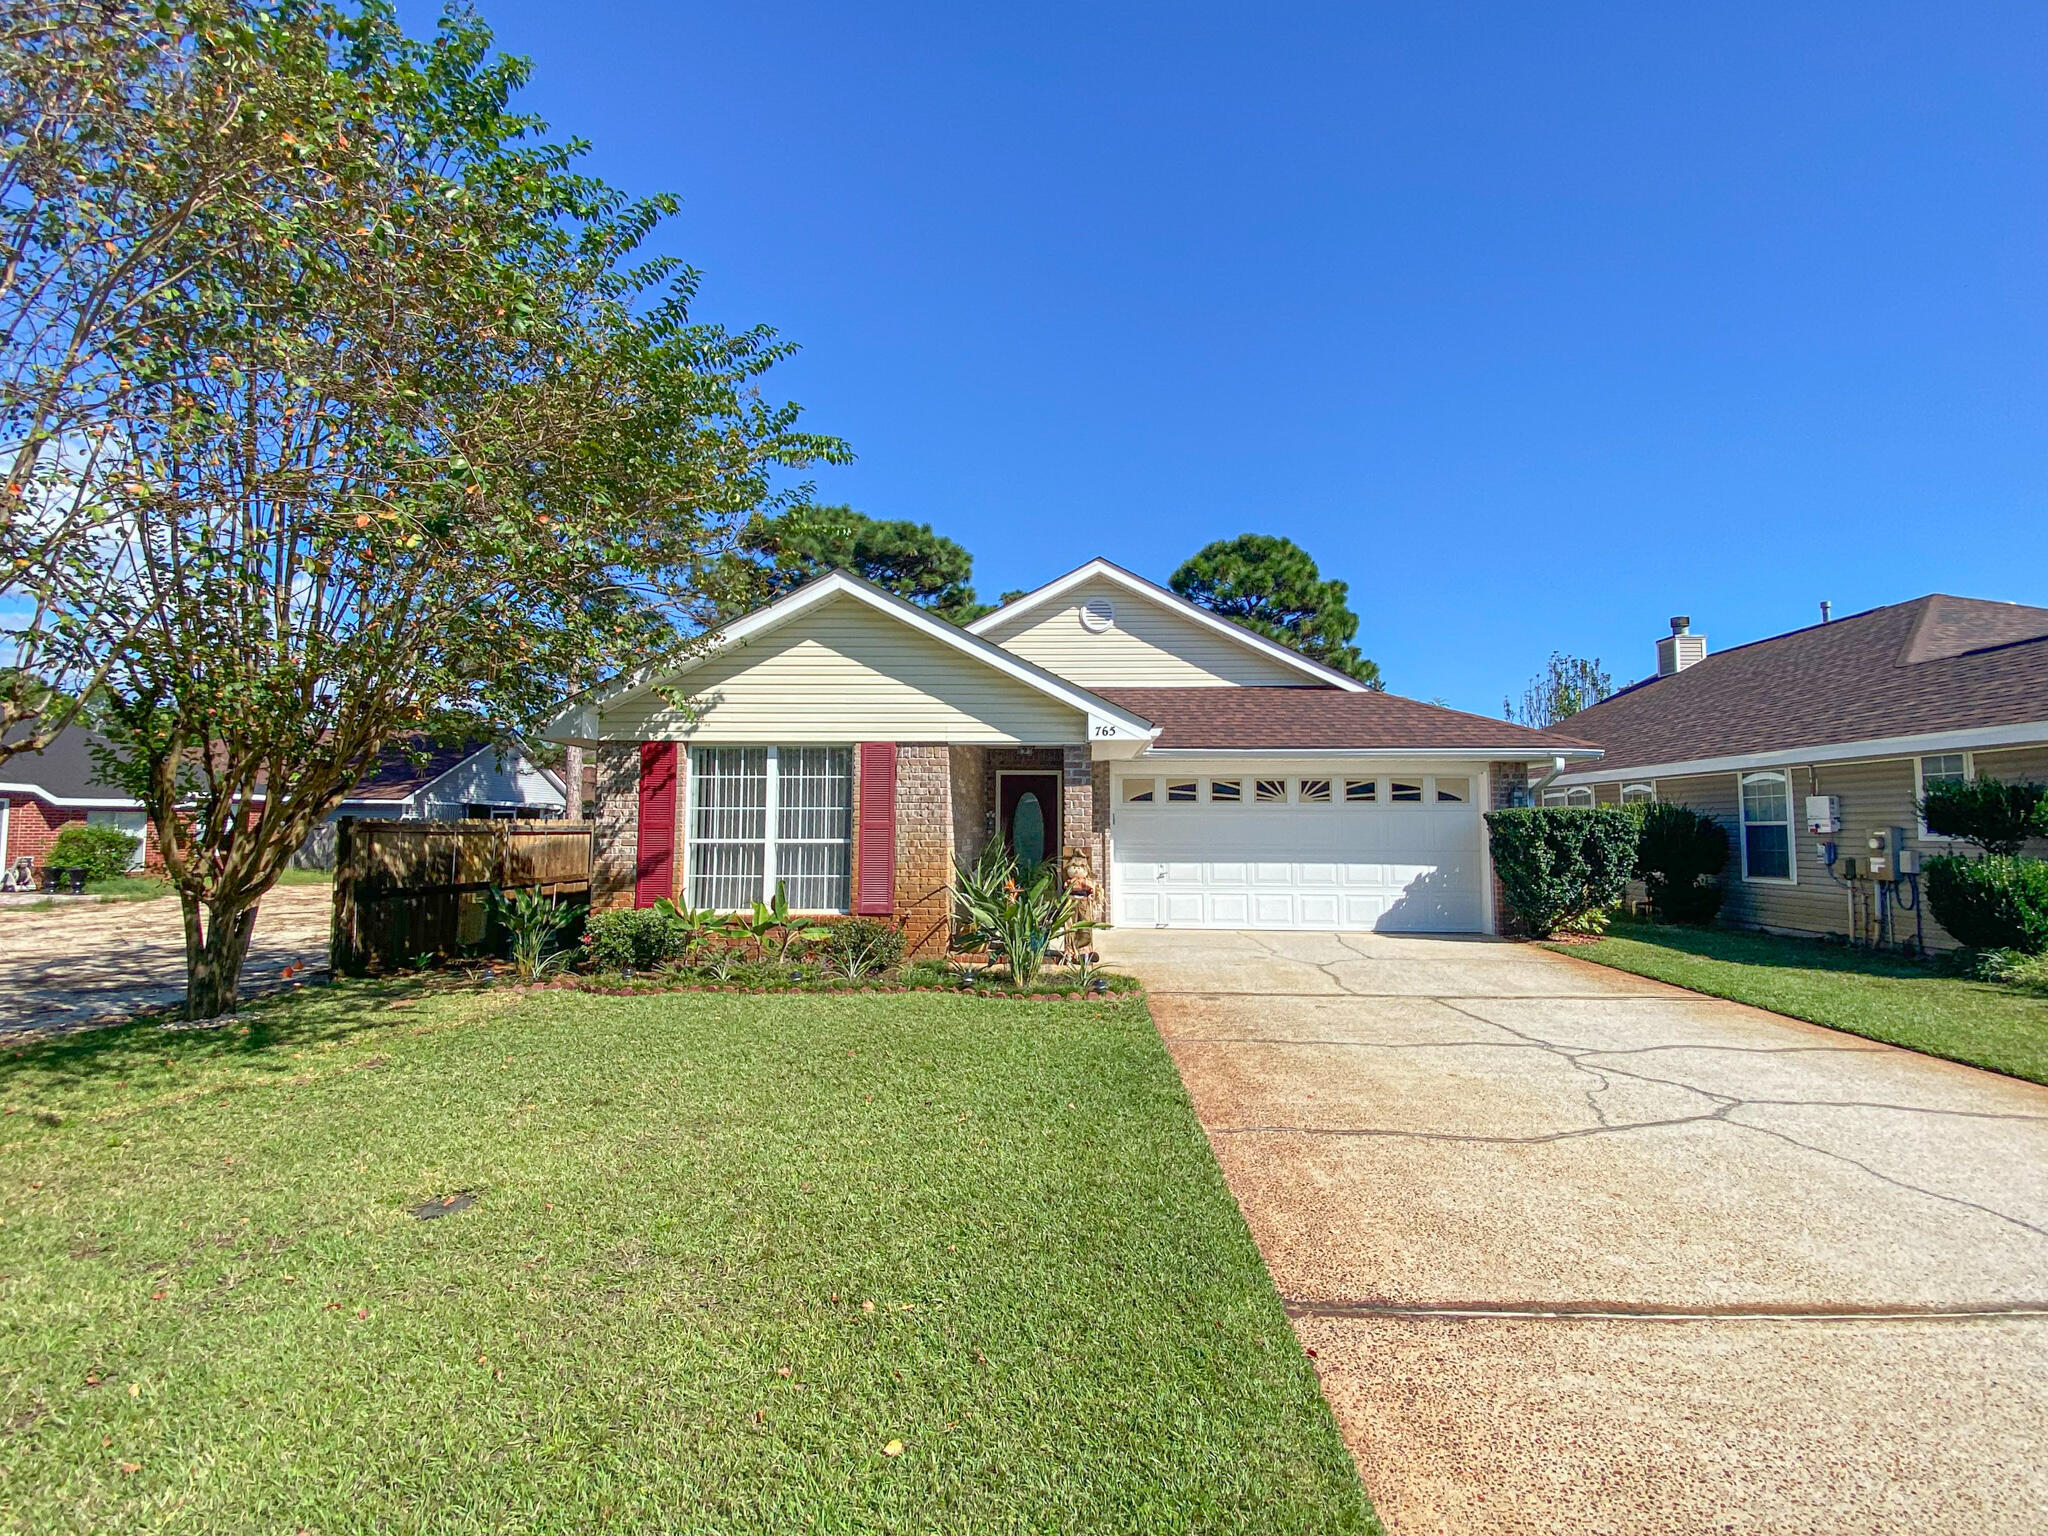 Home sweet home! This 3 bedroom 2 bath brick home in Emerald Village has been impeccably maintained